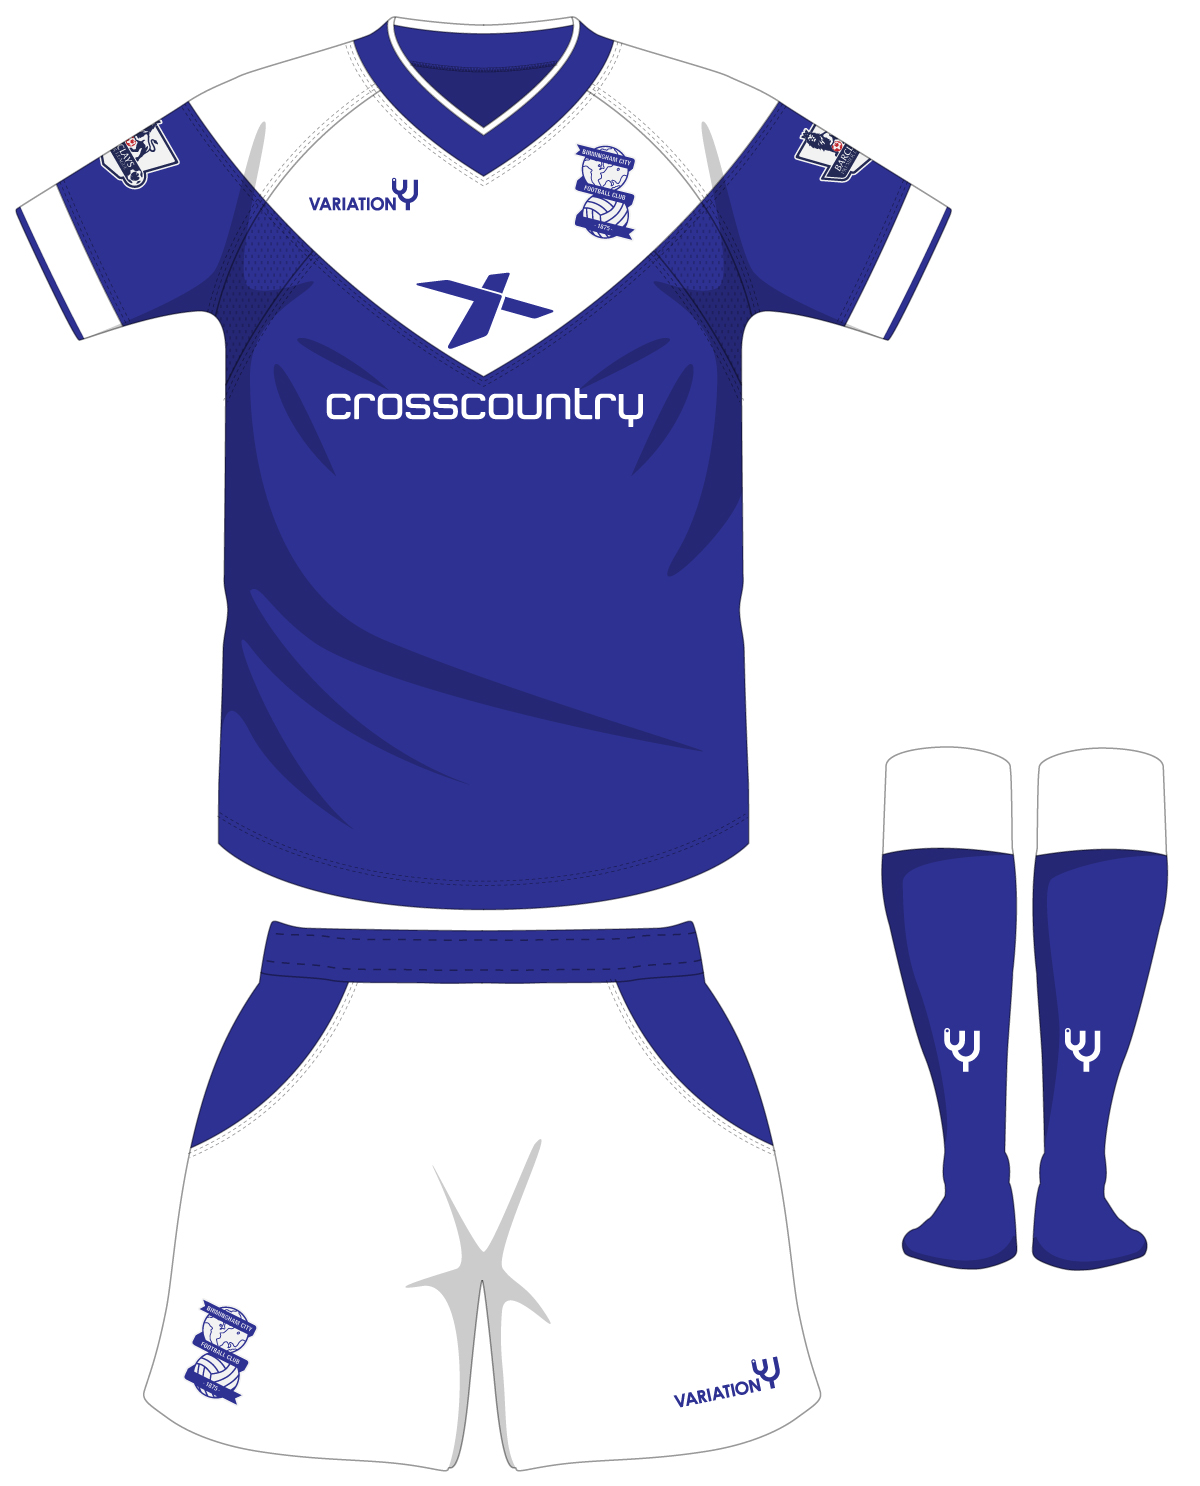 Quickly thought)))) birmingham city football club strip would